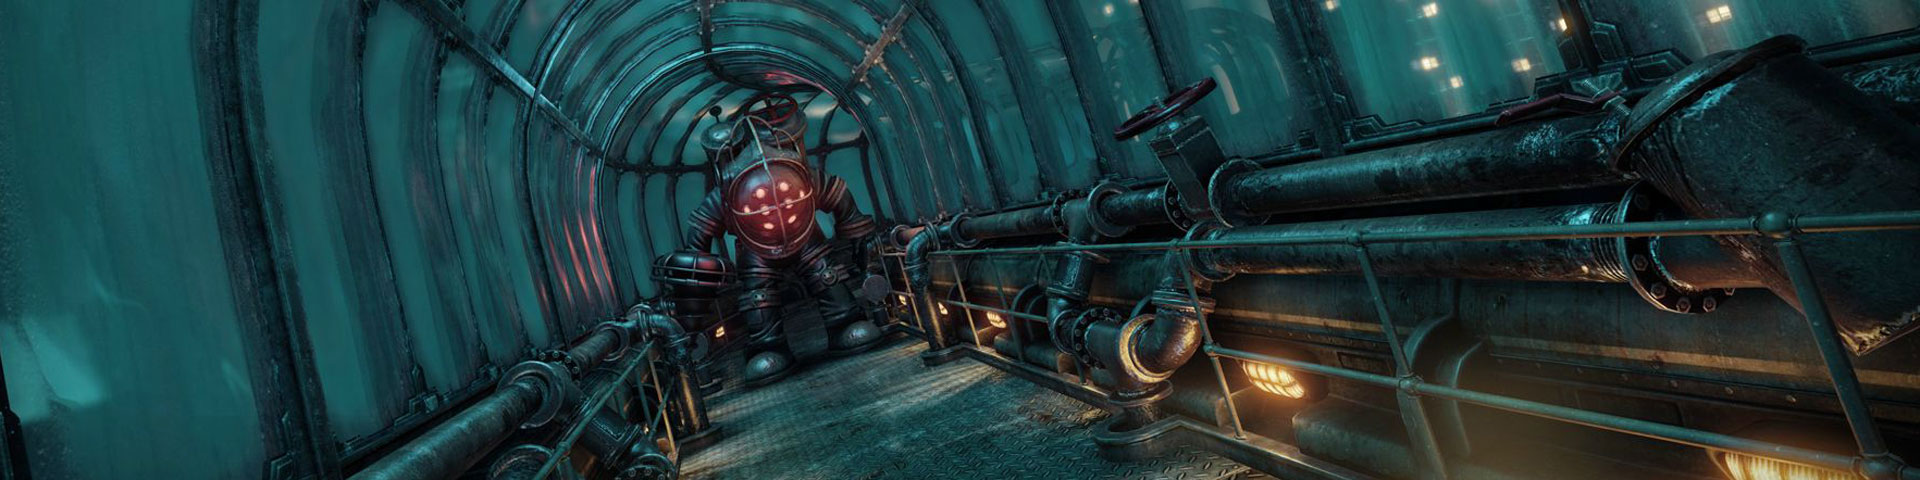 A monster that looks like a deep sea diving suit stands in a corridor. Beyond it, the ocean looms.